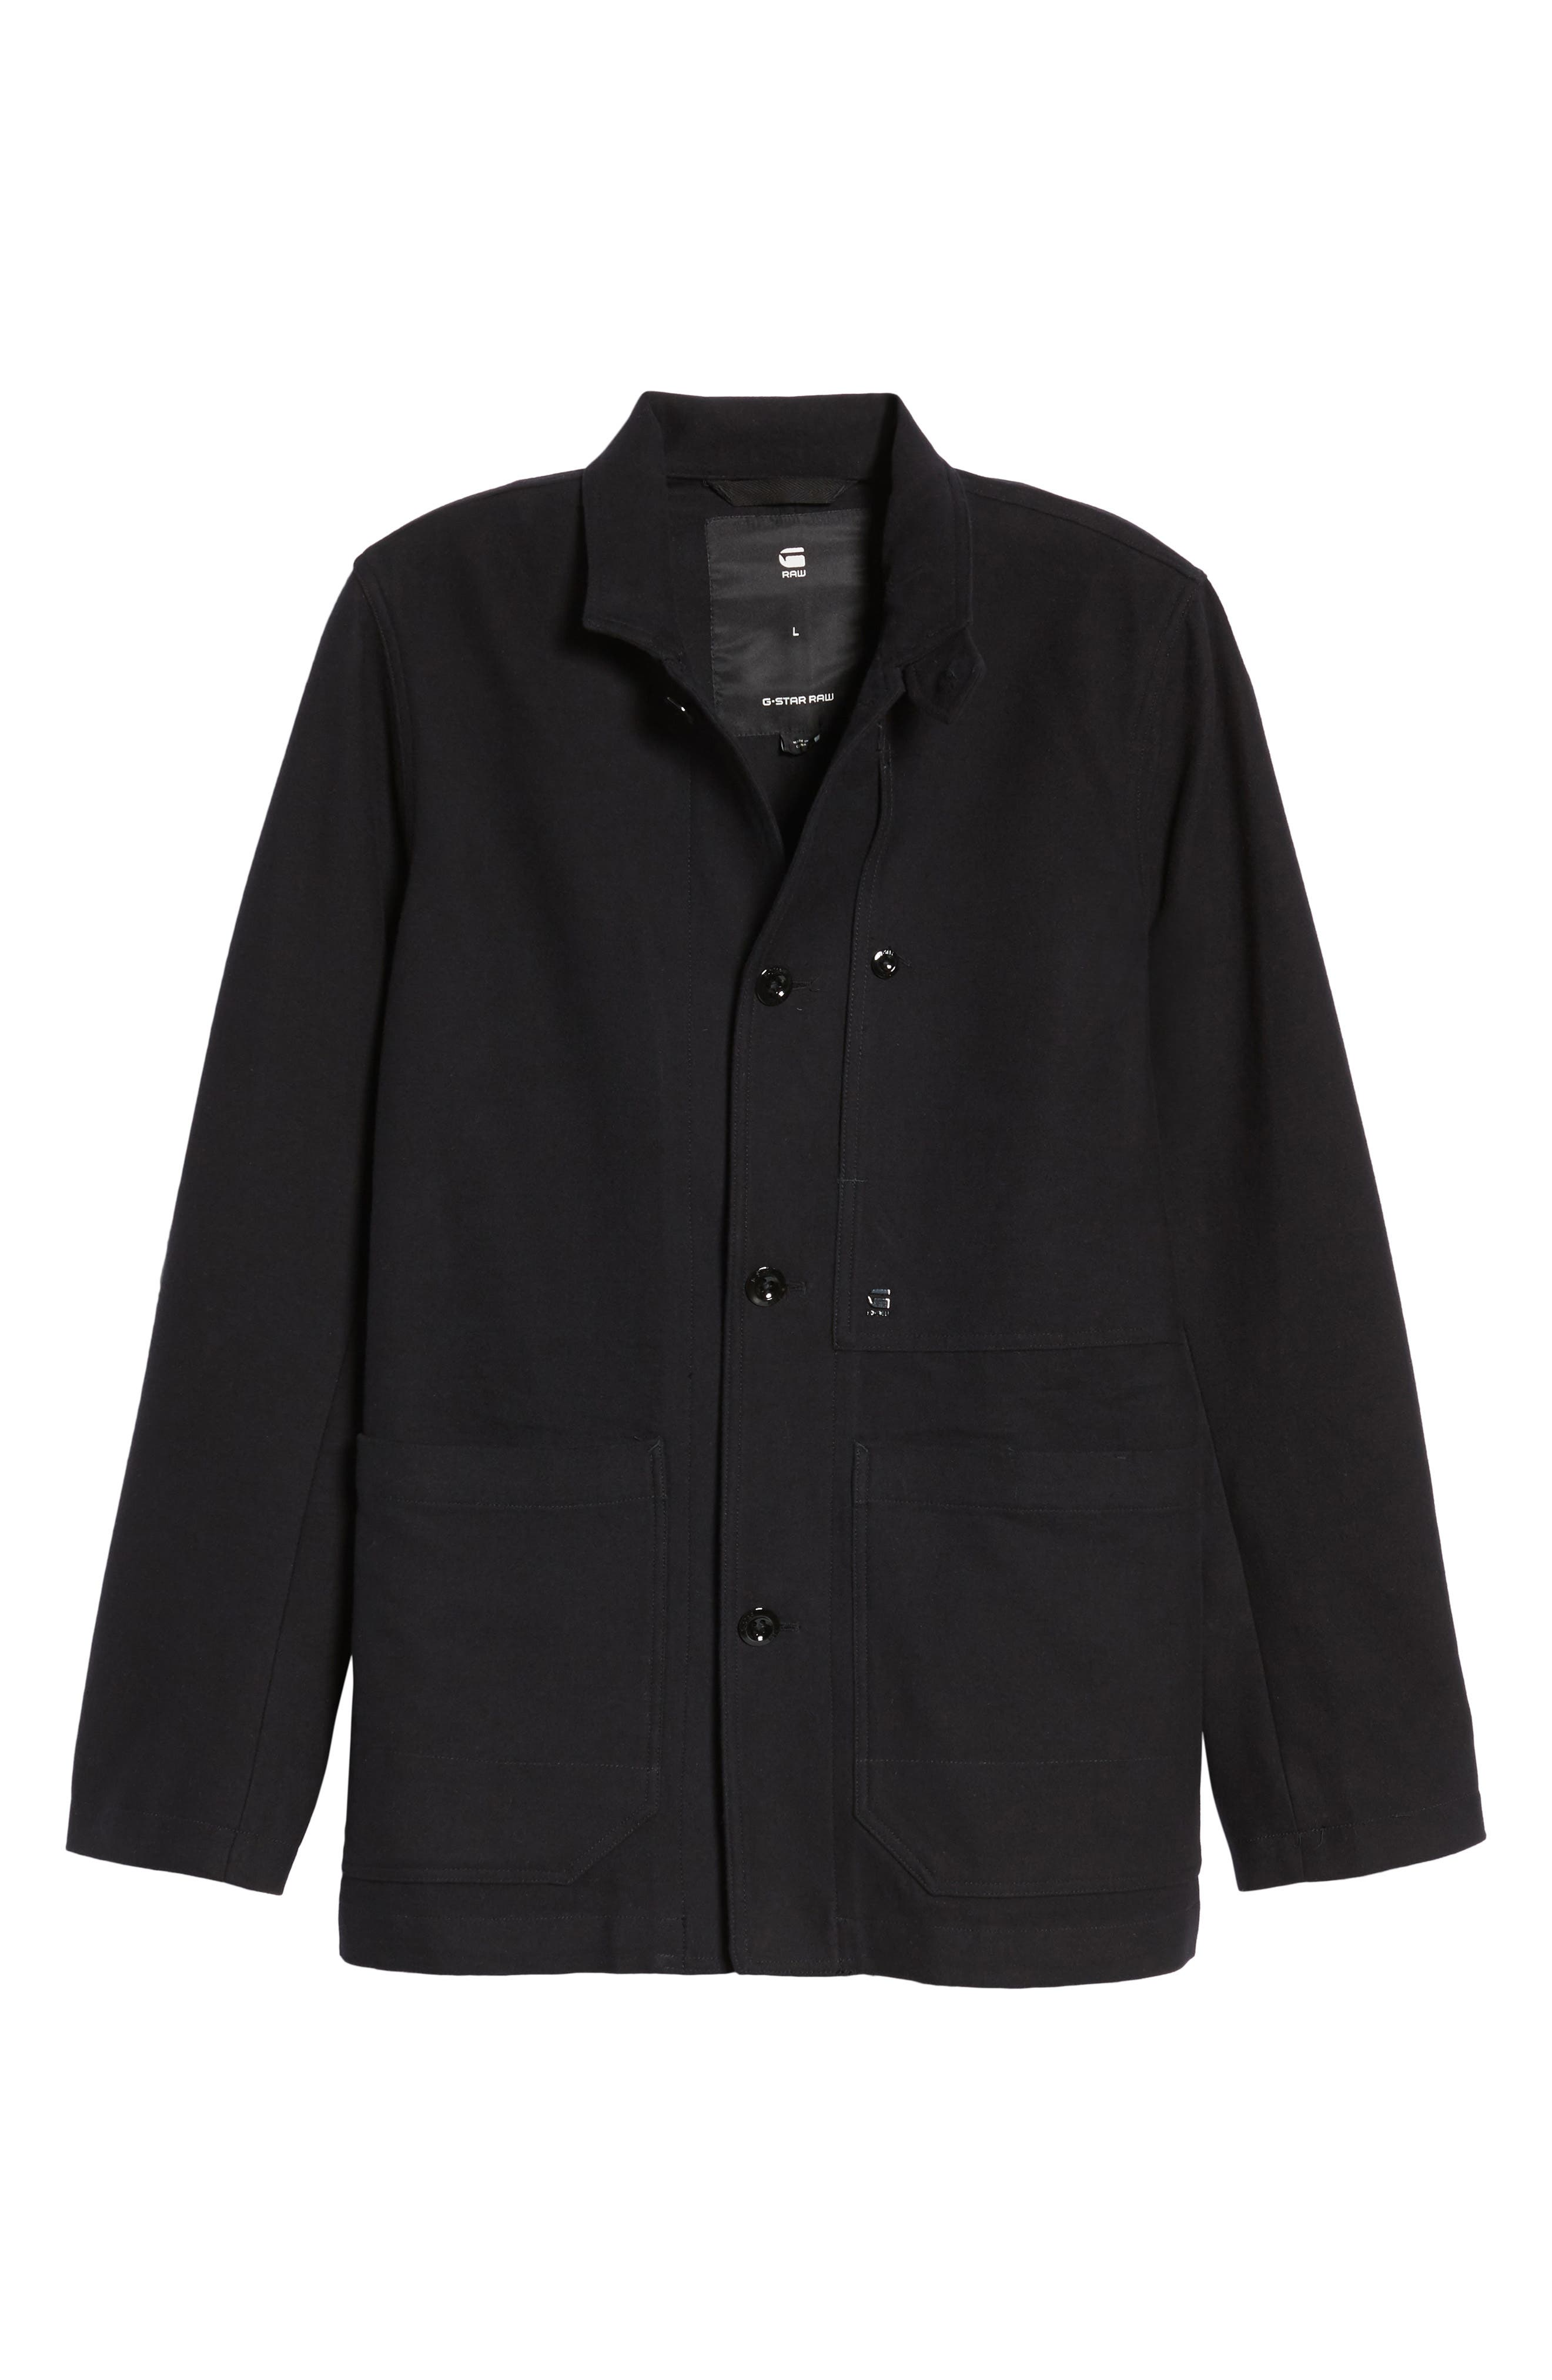 Bronson Worker Blazer,                             Alternate thumbnail 6, color,                             Black